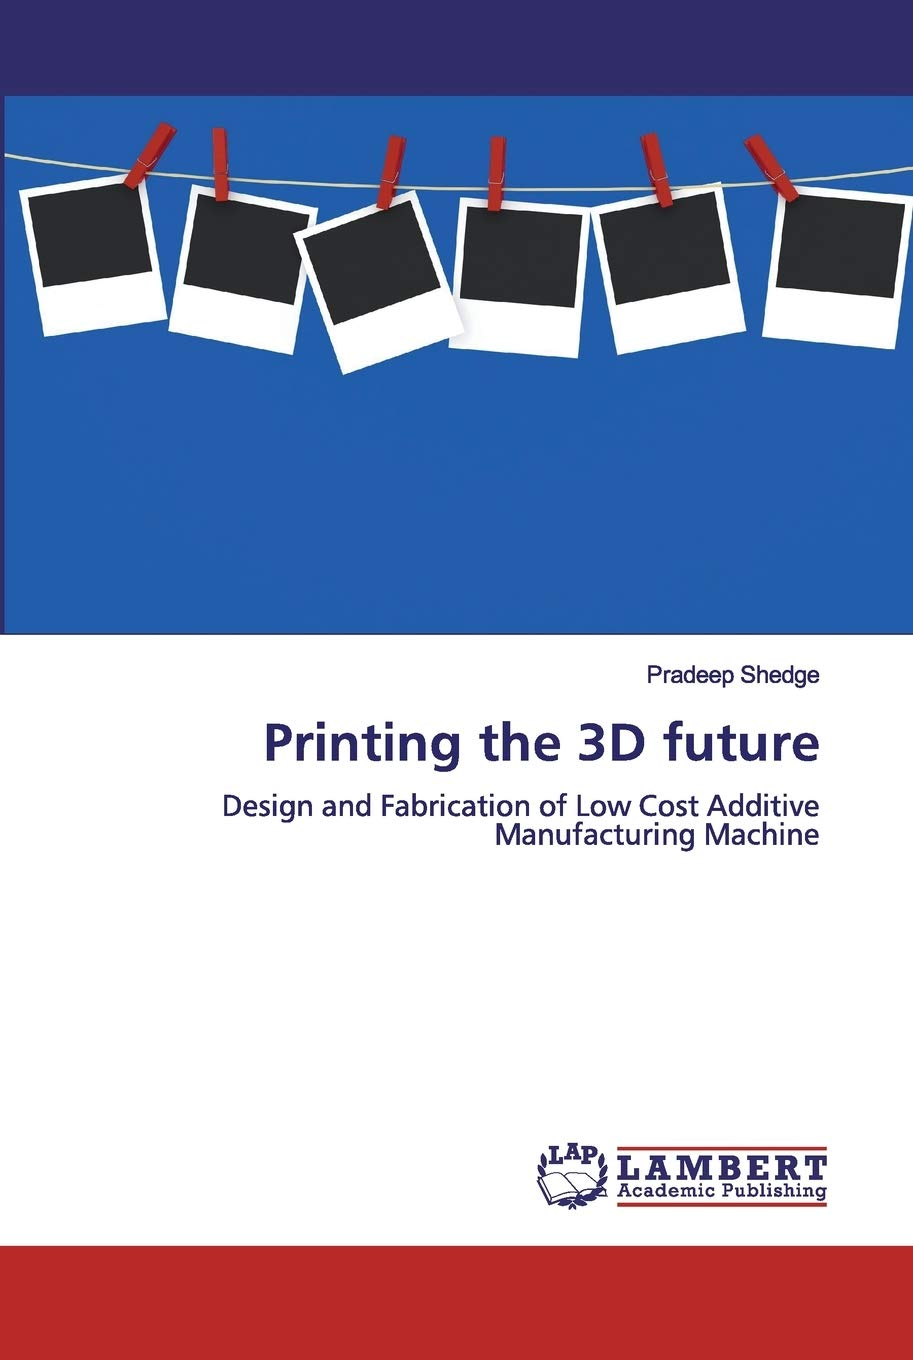 Printing the 3D future